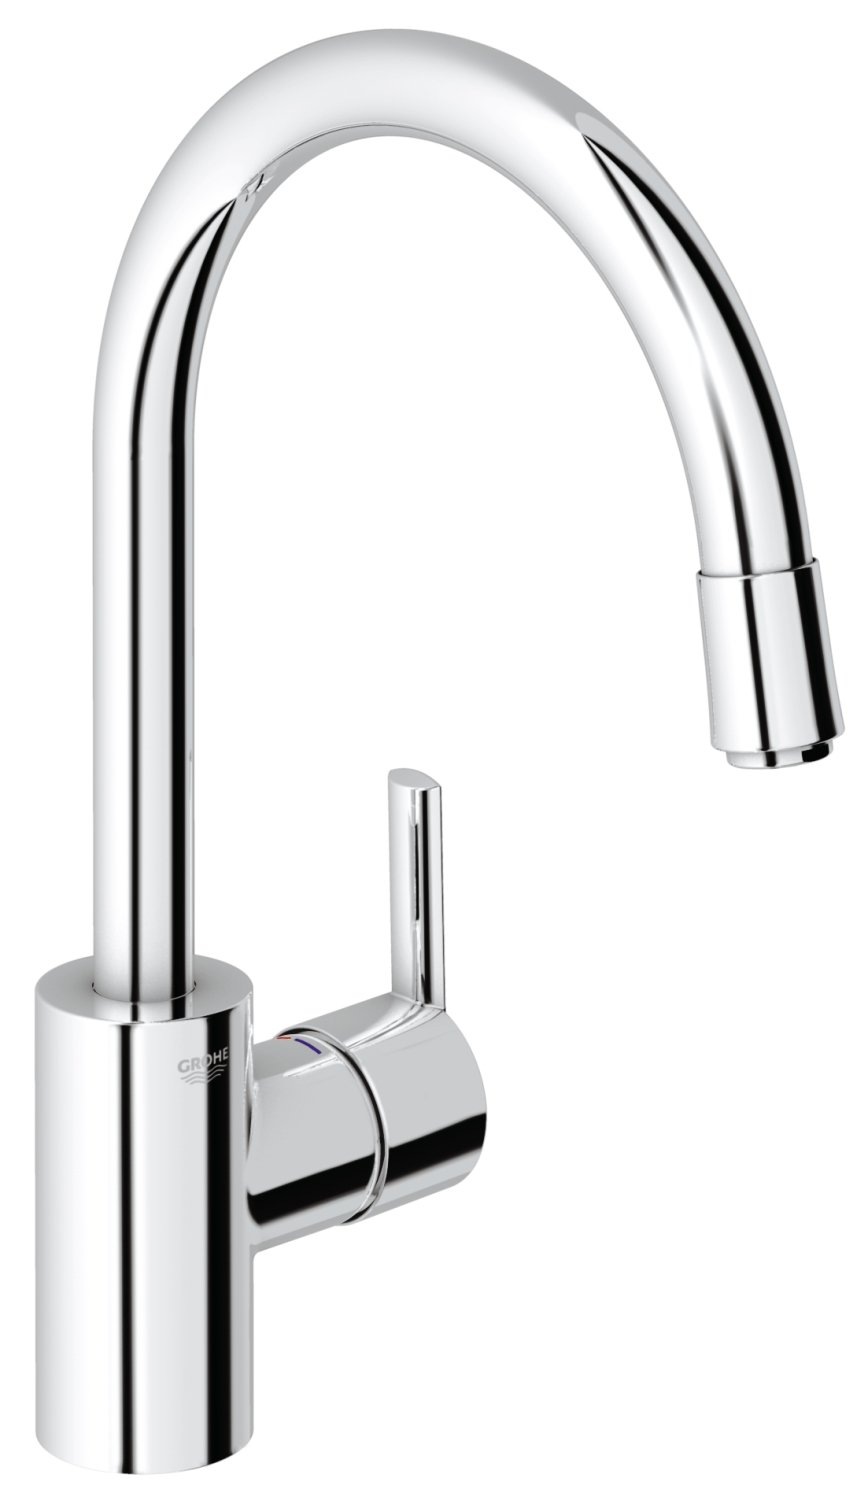 GROHE 32671000 | Feel Kitchen Tap | Pull-Down Spray: Amazon.co.uk ...